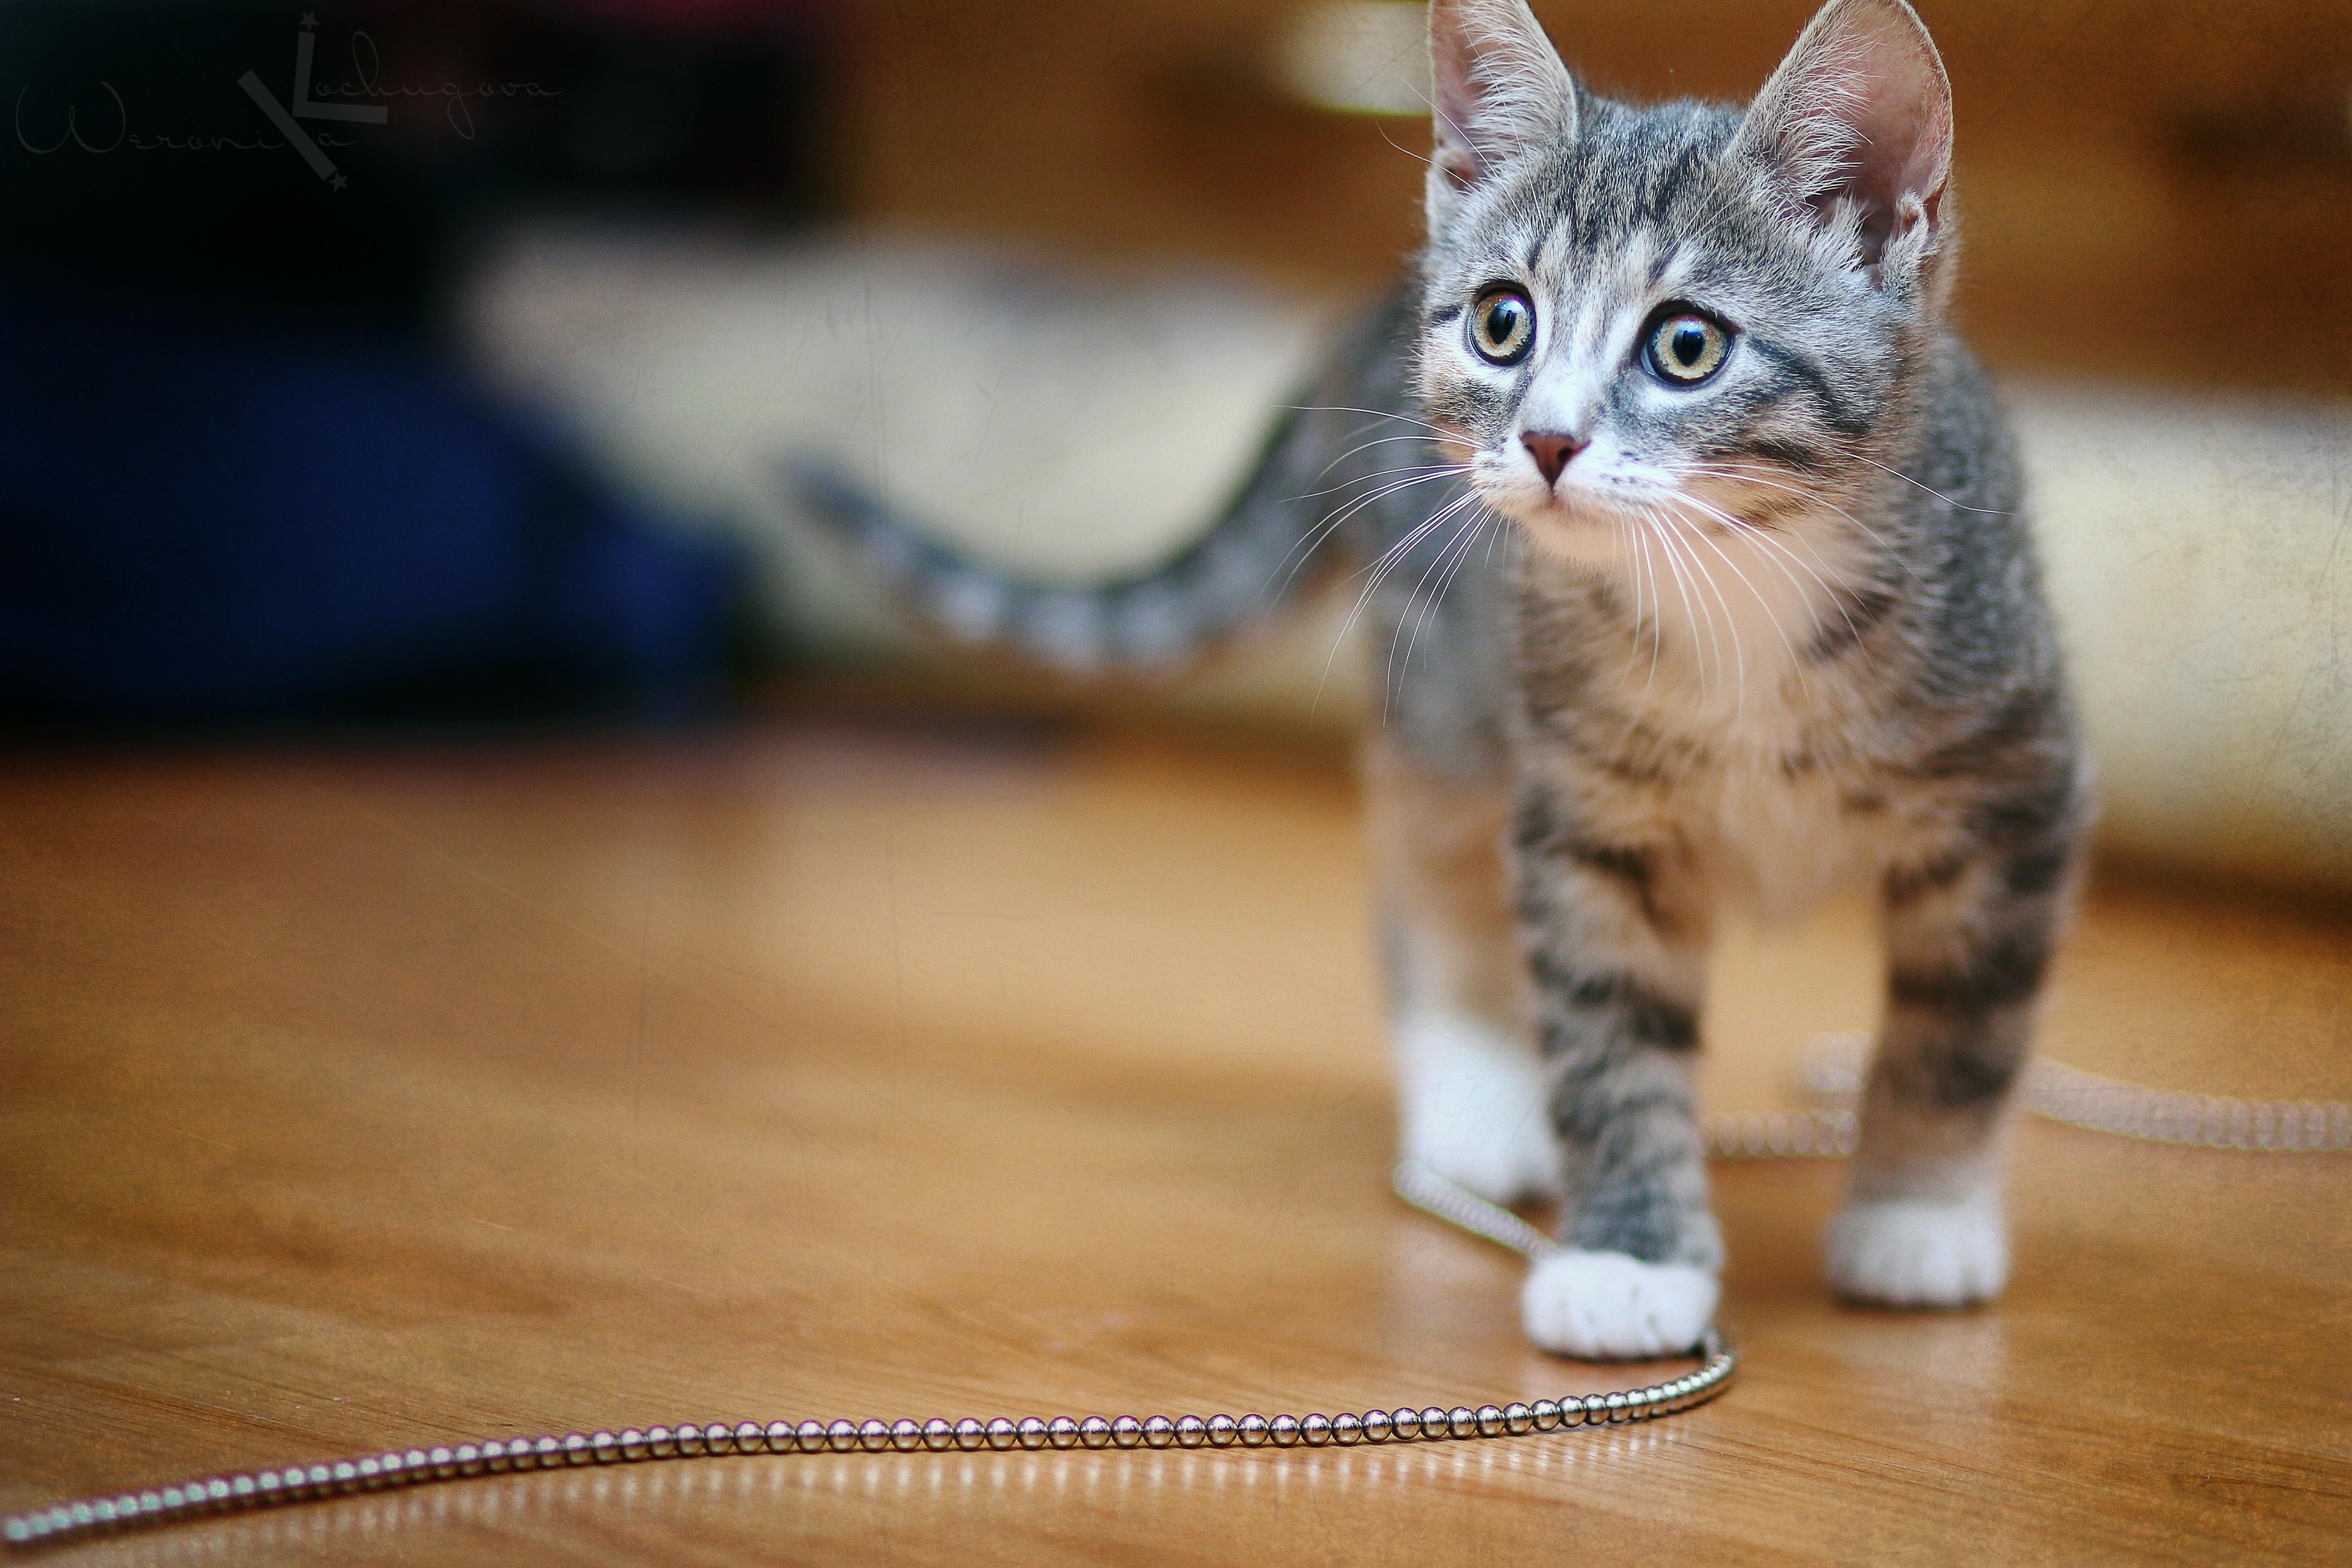 80964 download wallpaper Animals, Kitty, Kitten, Beads, Chain, Sight, Opinion, Playful screensavers and pictures for free